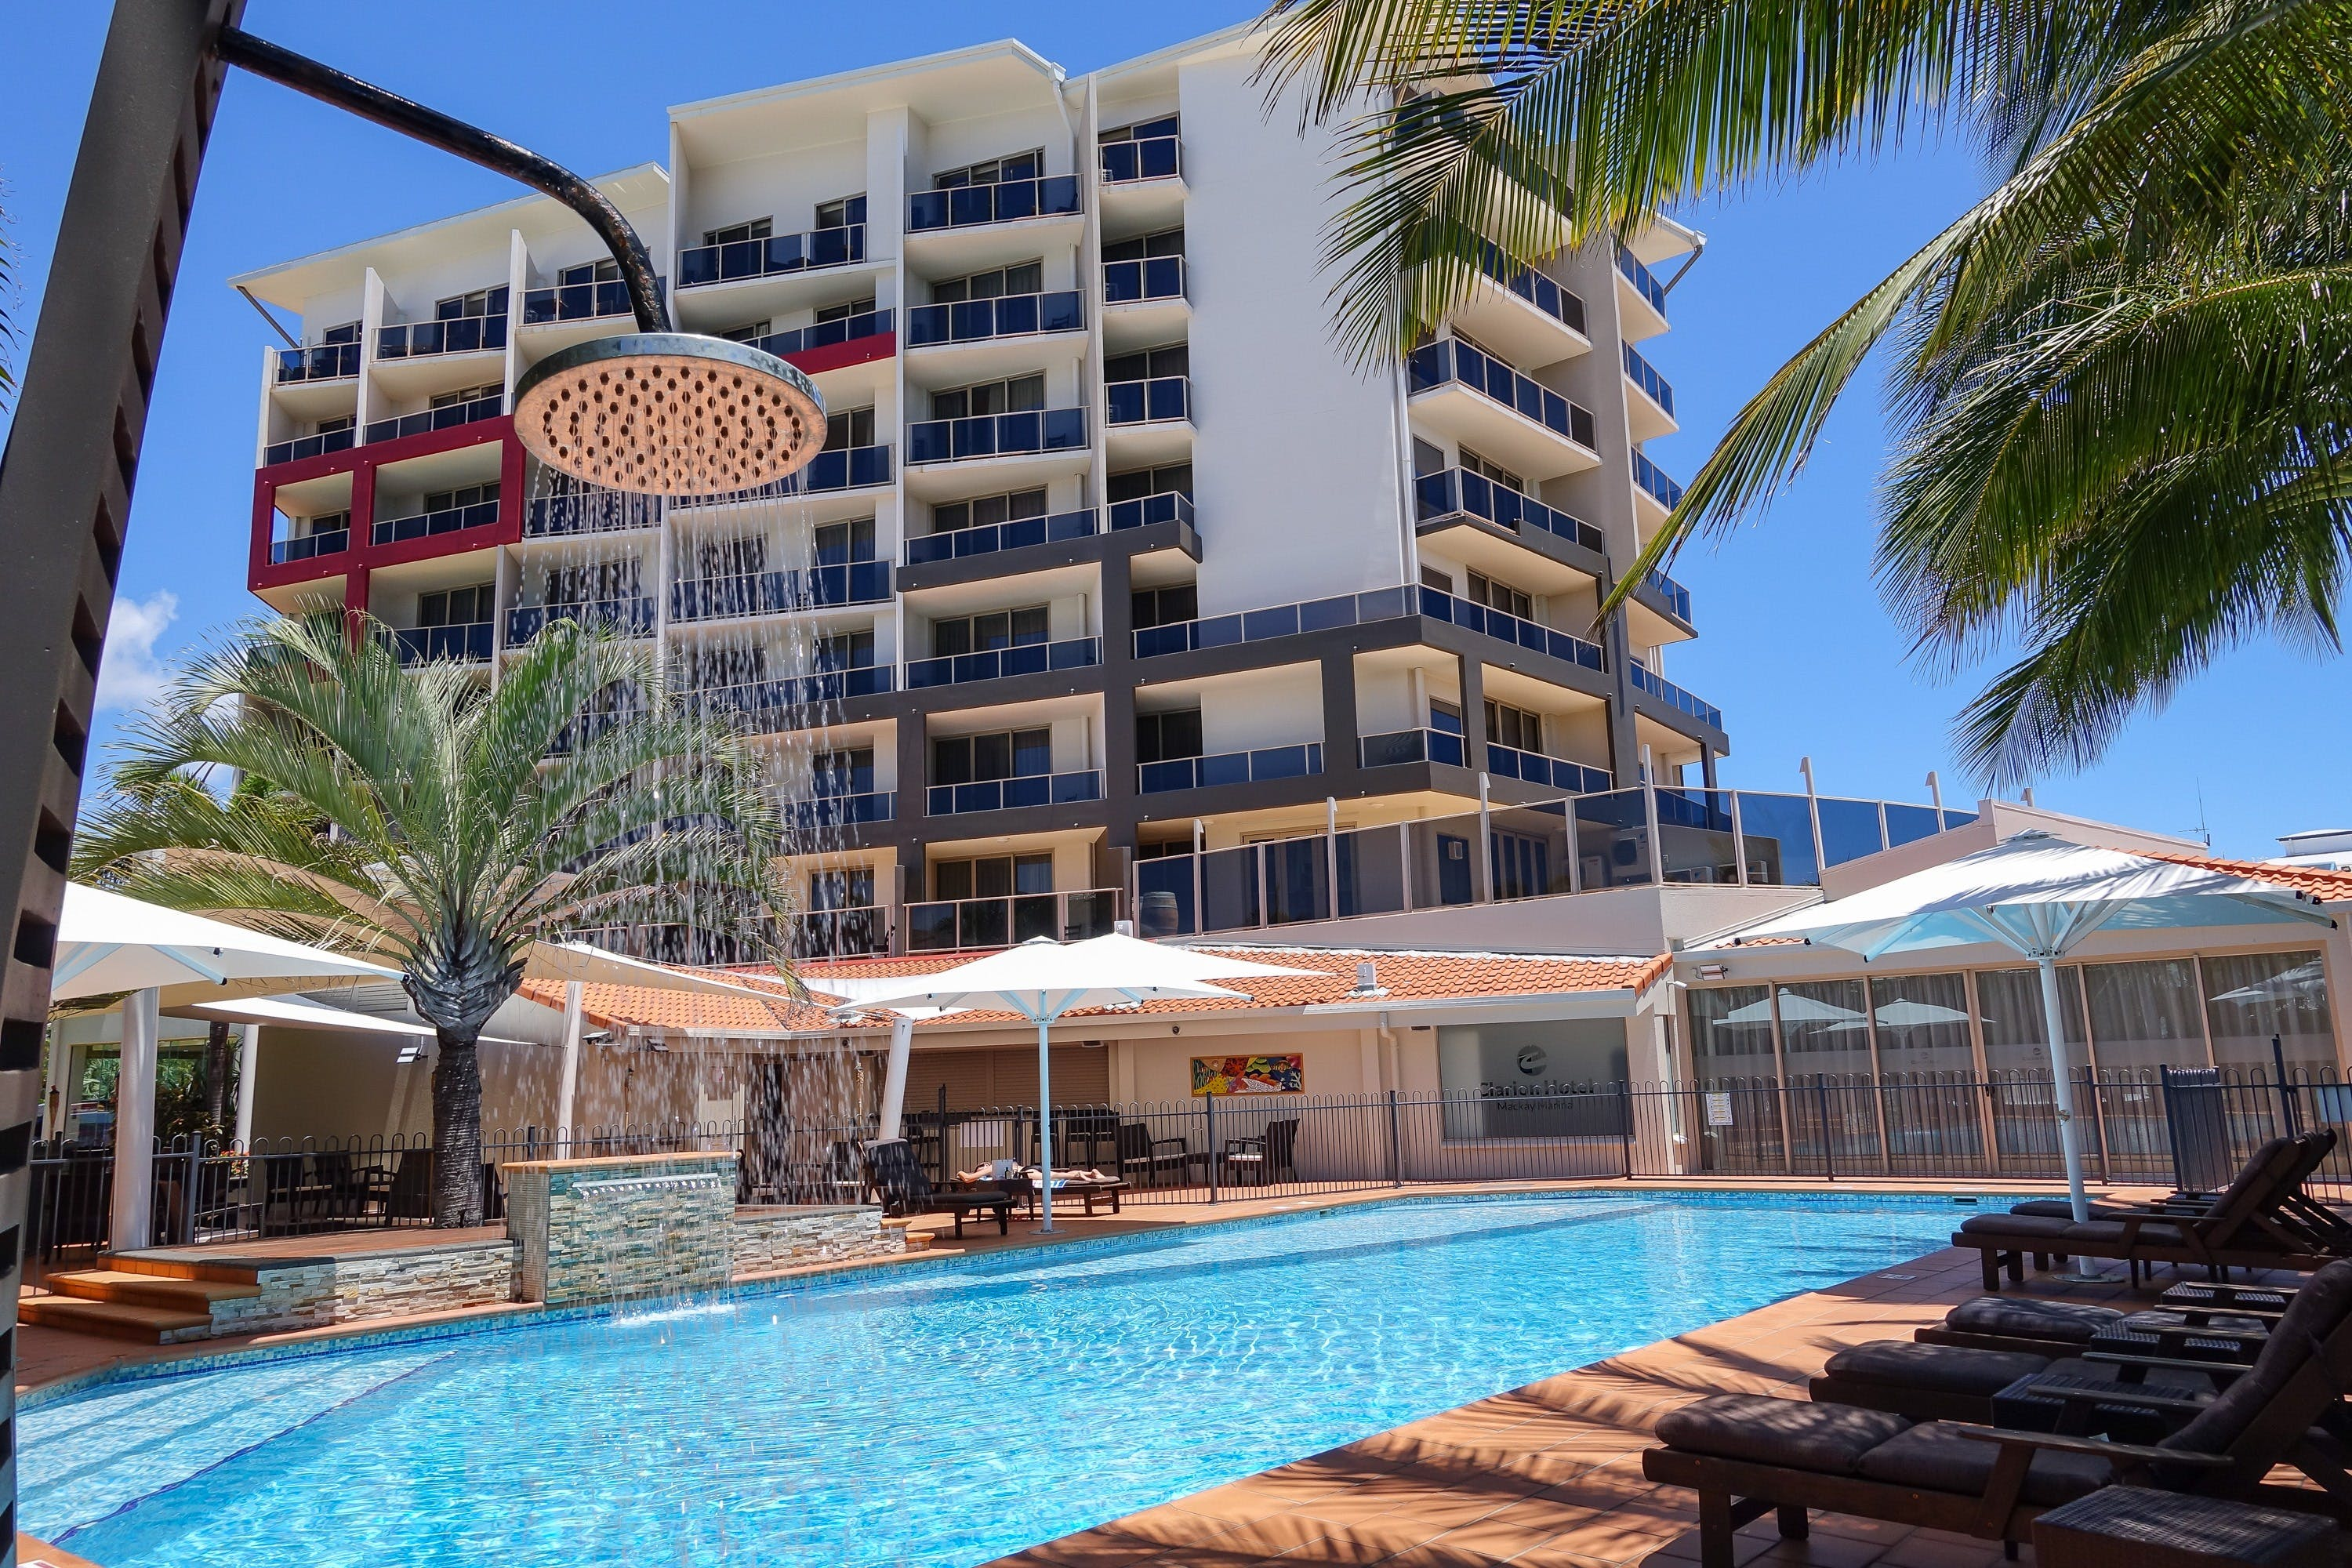 Mantra Mackay - Accommodation in Surfers Paradise